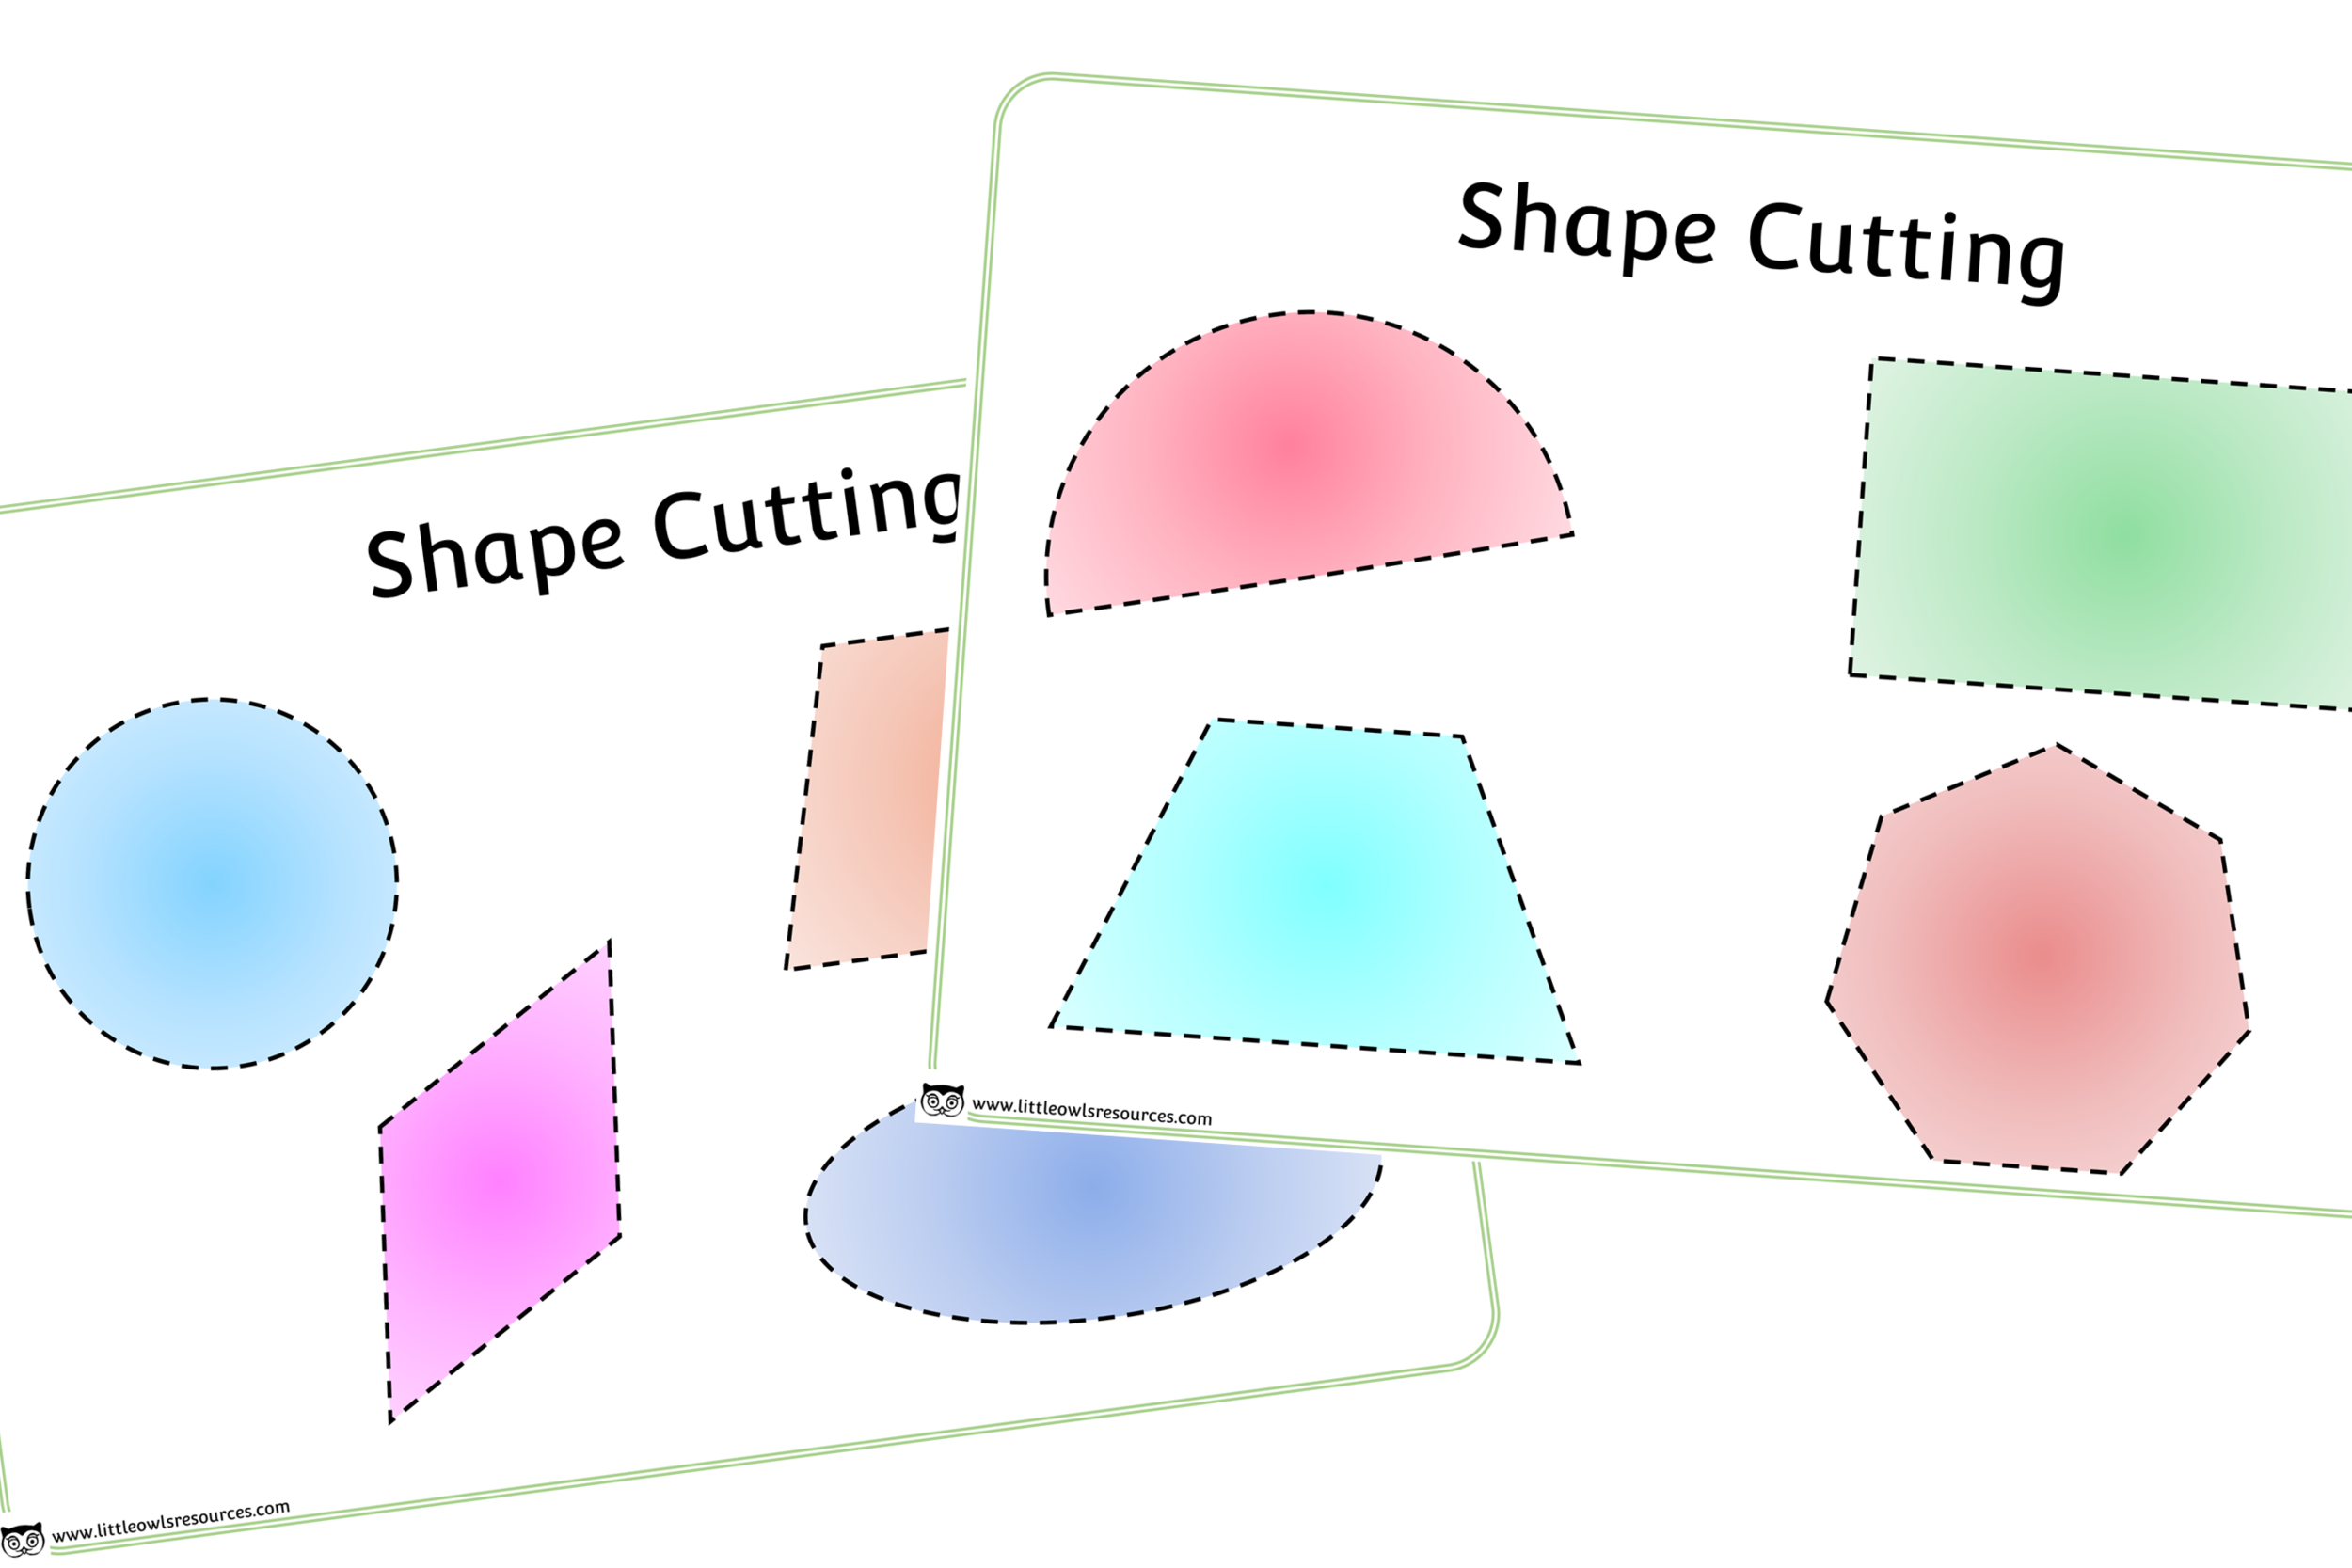 2DShapeCuttingCover.png